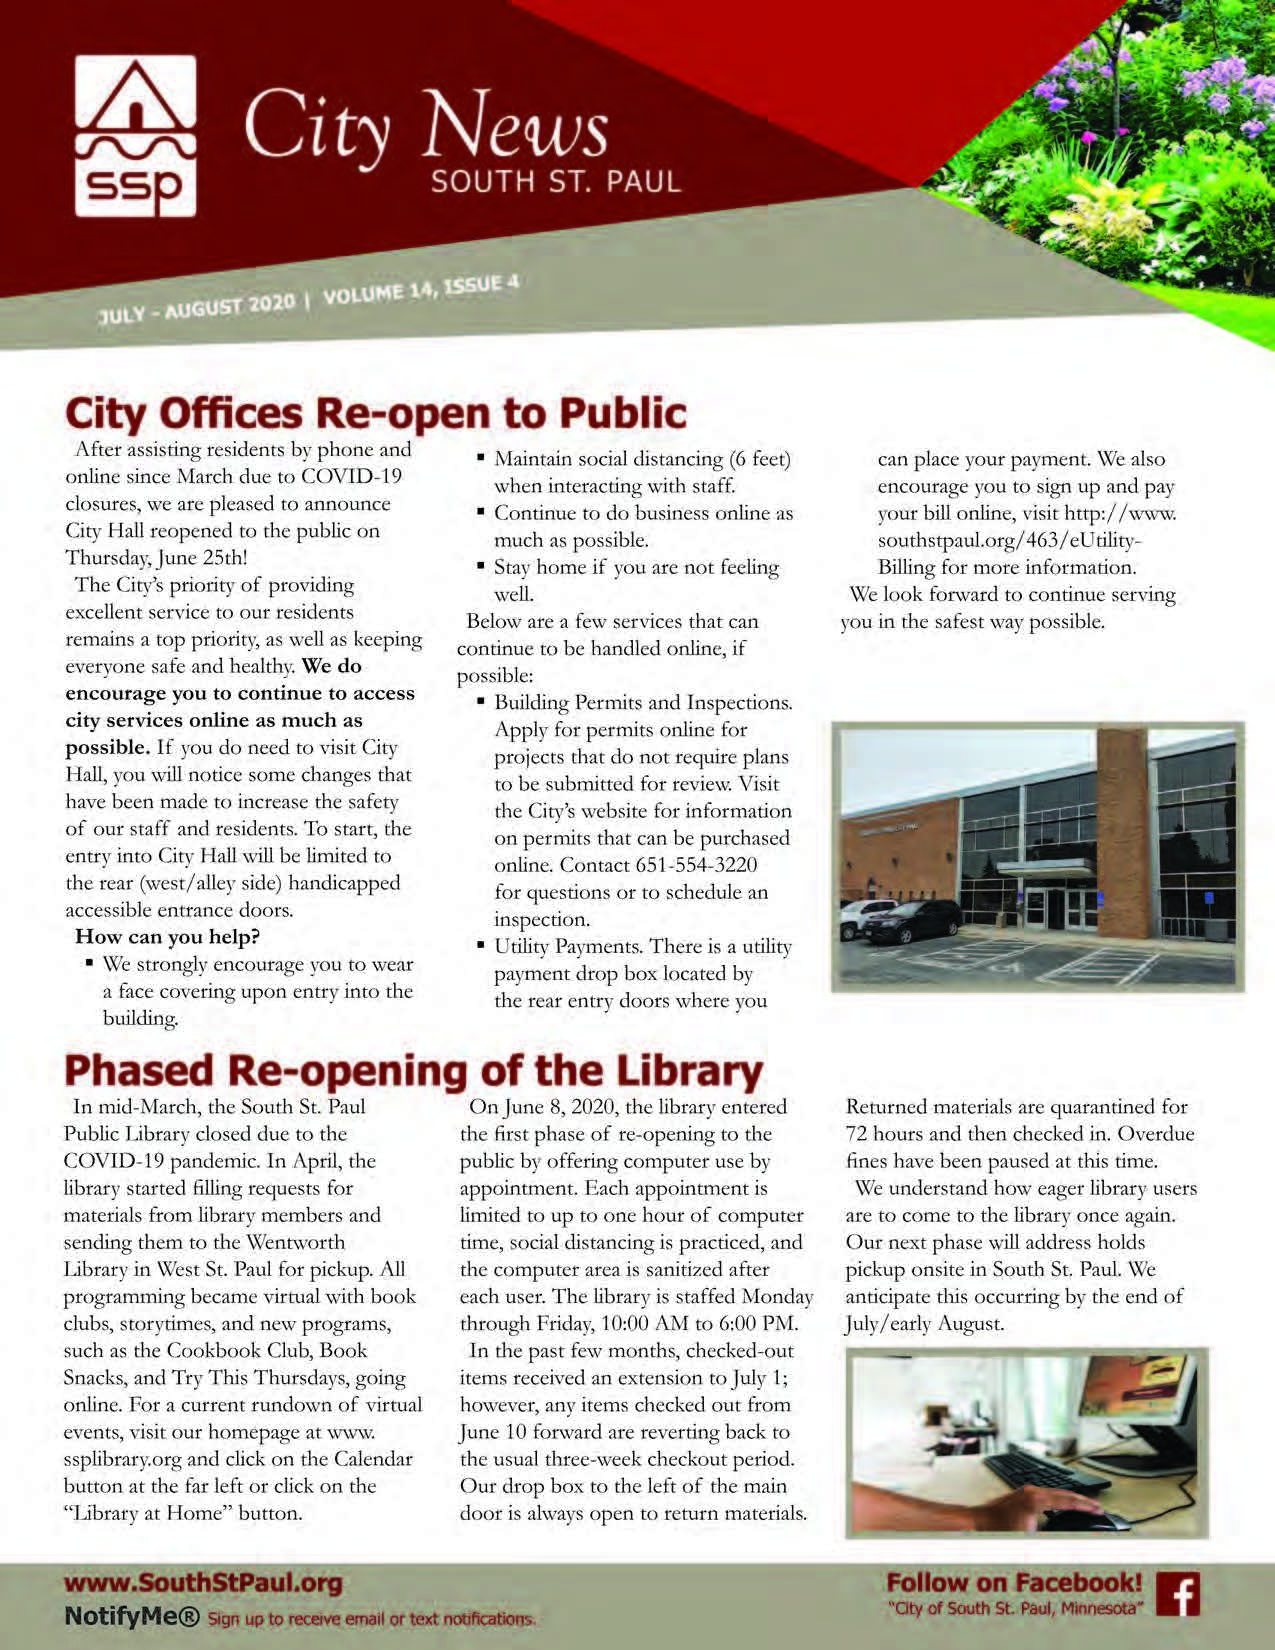 Image of the front cover of the City Newsletter (July-August 2020)